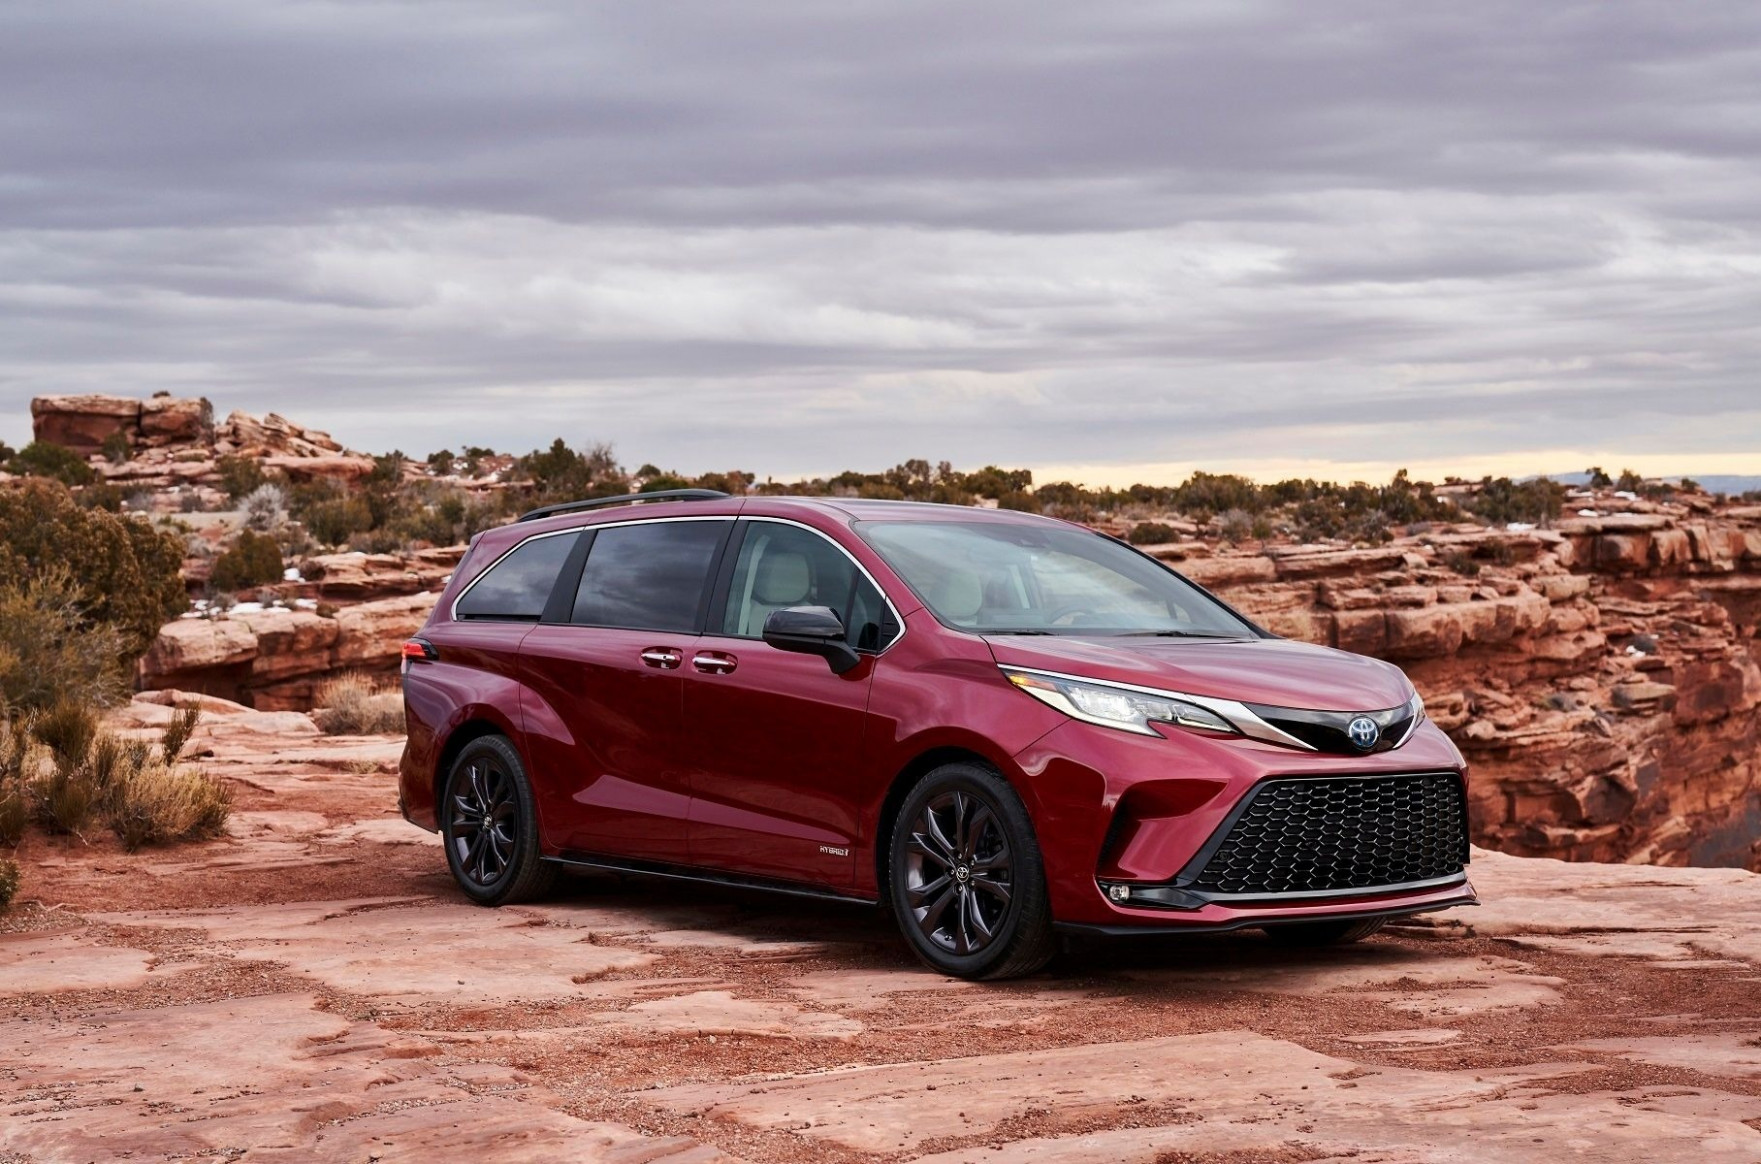 Redesign and Concept 2022 Toyota Sienna